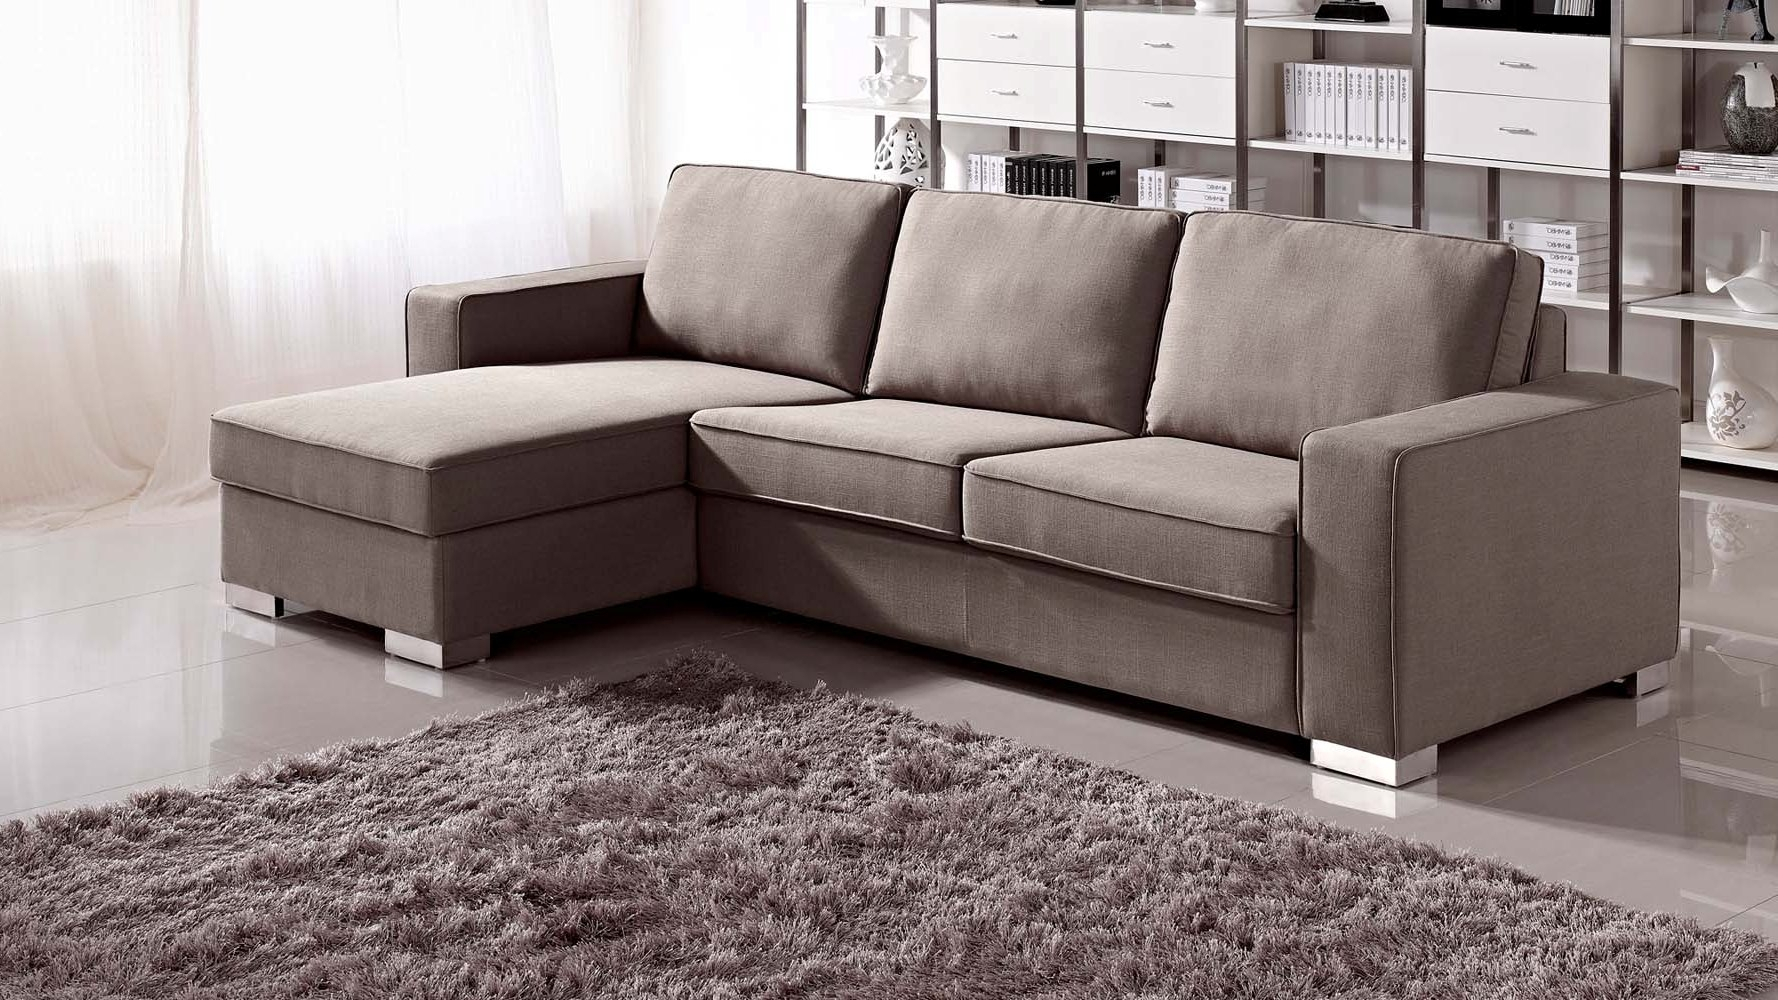 Sears Sectional Sofa All Information Sofa Desain Ideas Inside Craftsman Sectional Sofa (Image 14 of 15)